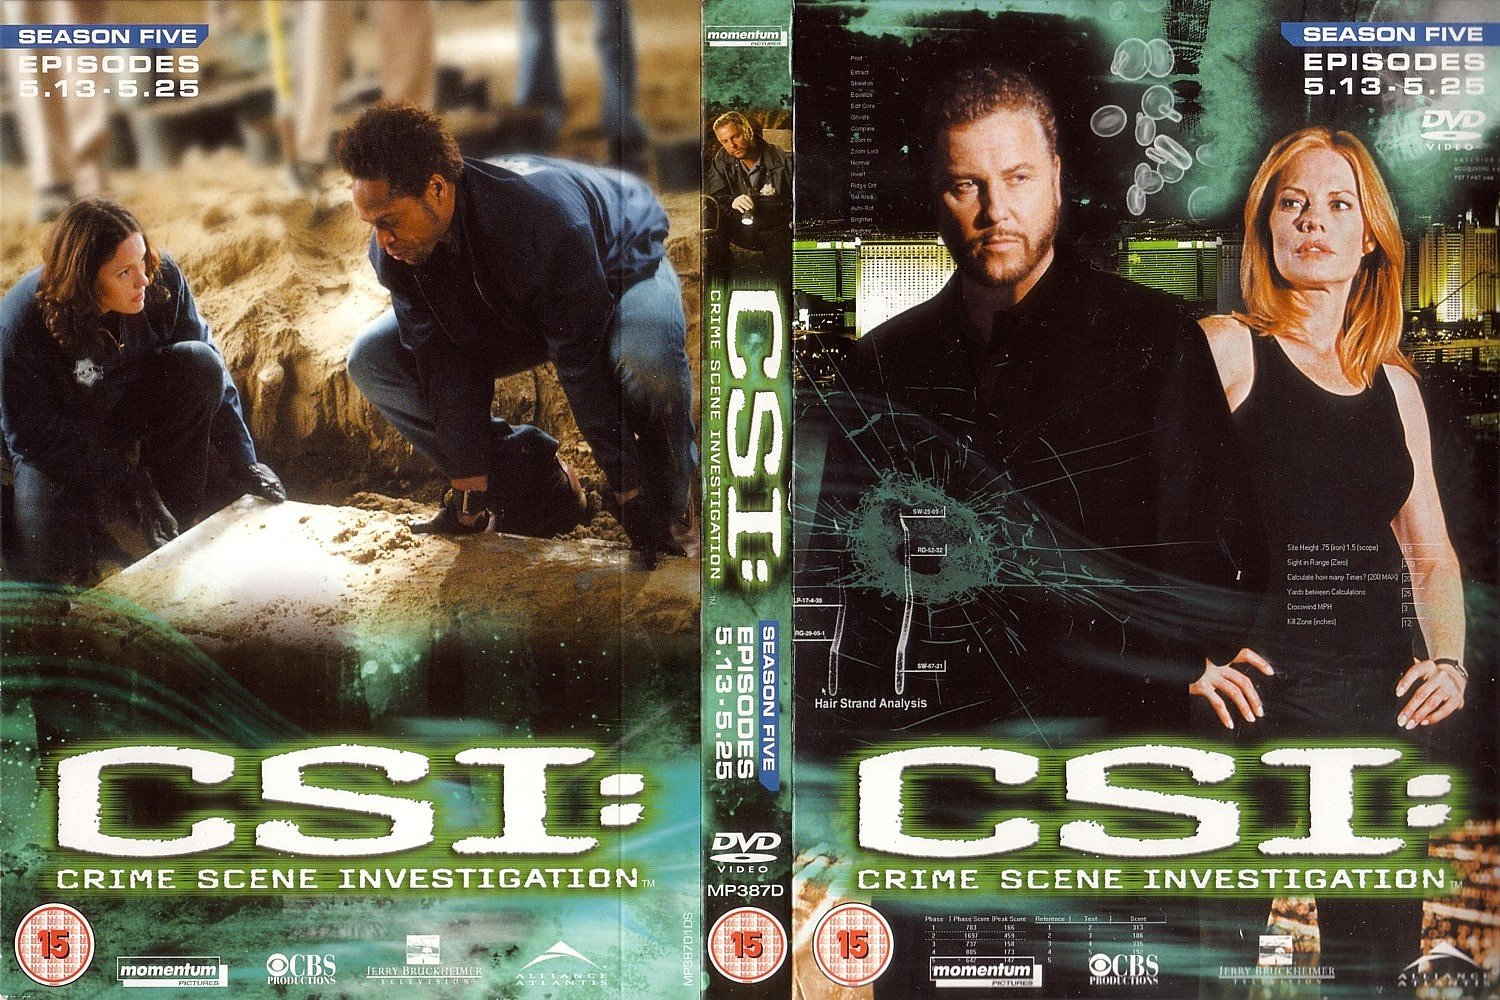 C_S_I_Season_5_Episodes_13-25-[cdcovers_cc]-front.jpg